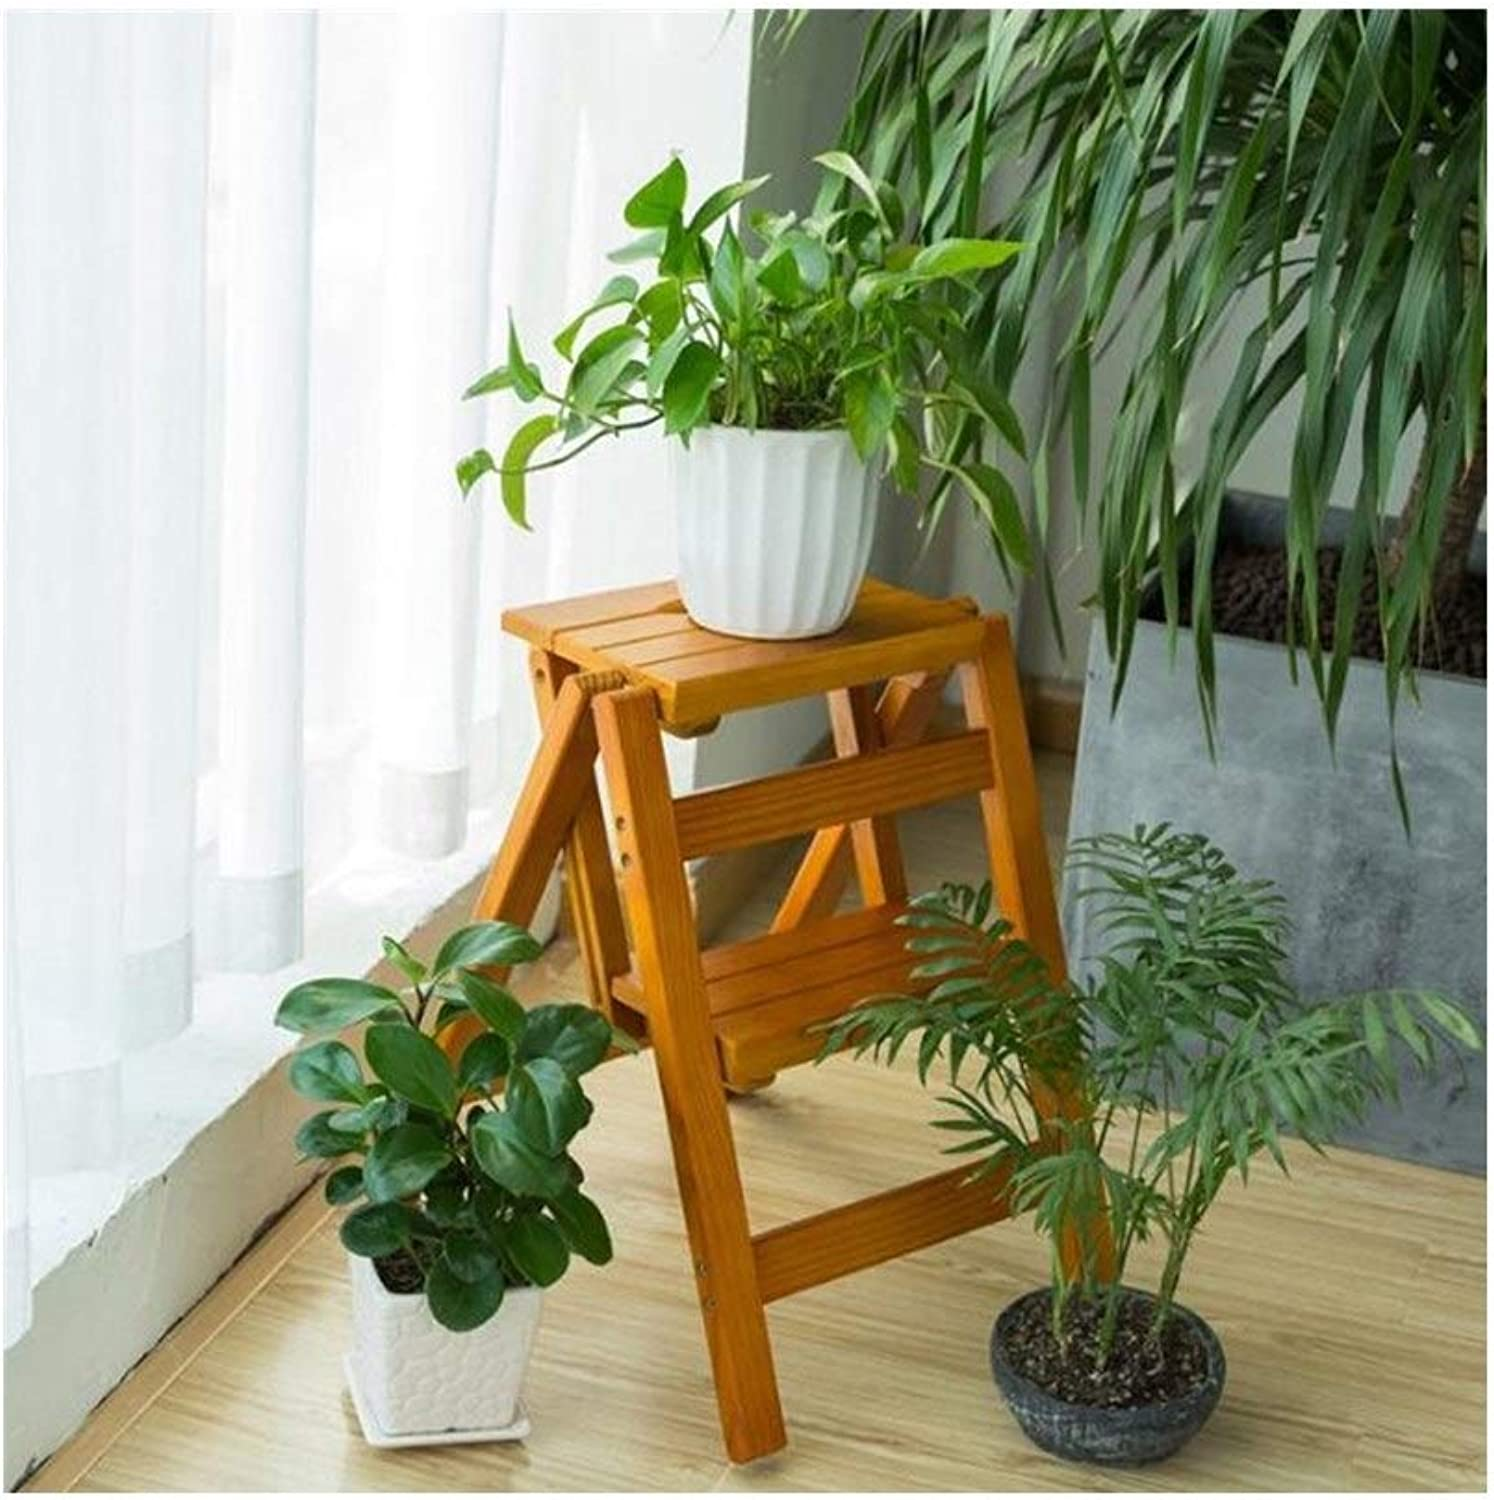 Two-Story Stair stools, Home Wood Anti-Slip Folding ladders, Multi-Functional Step Stool, Creative Kitchen Ladder Stool, (color   B)